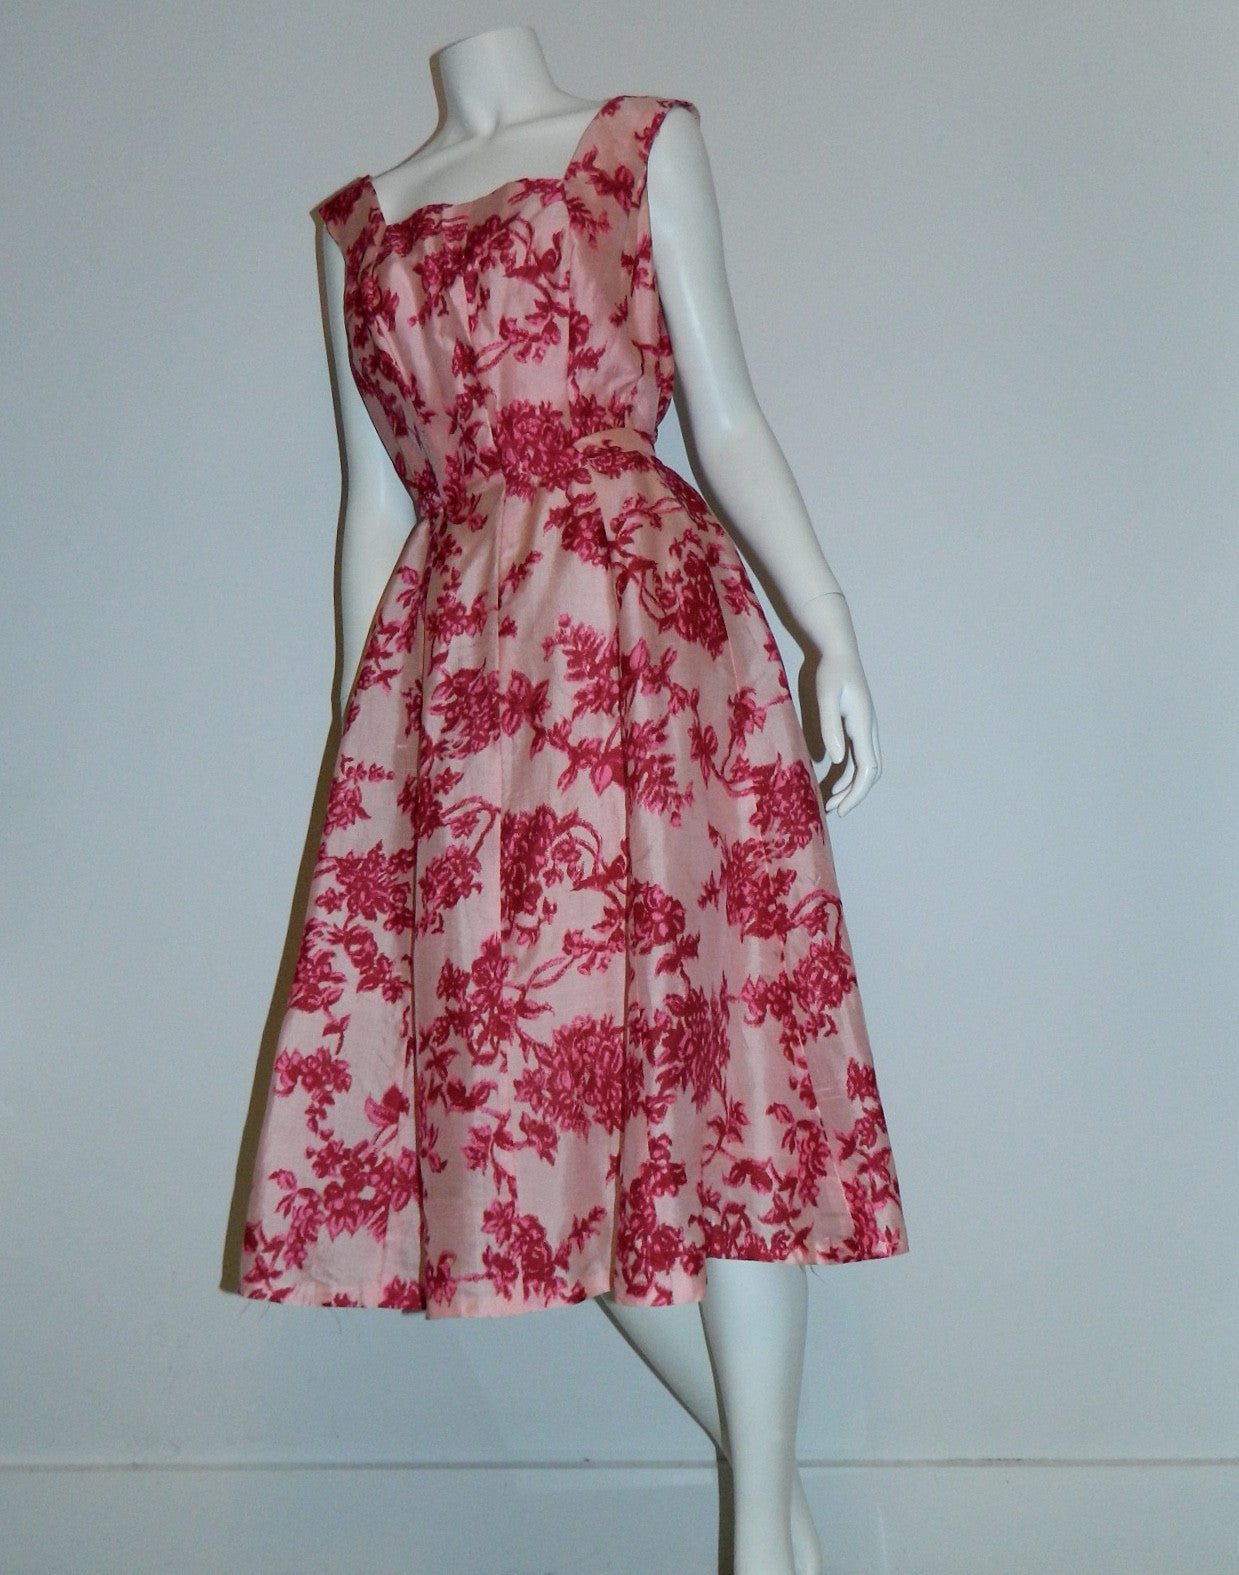 vintage GiGi Young dress / 1960s silk shantung / pink flowers full skirt M